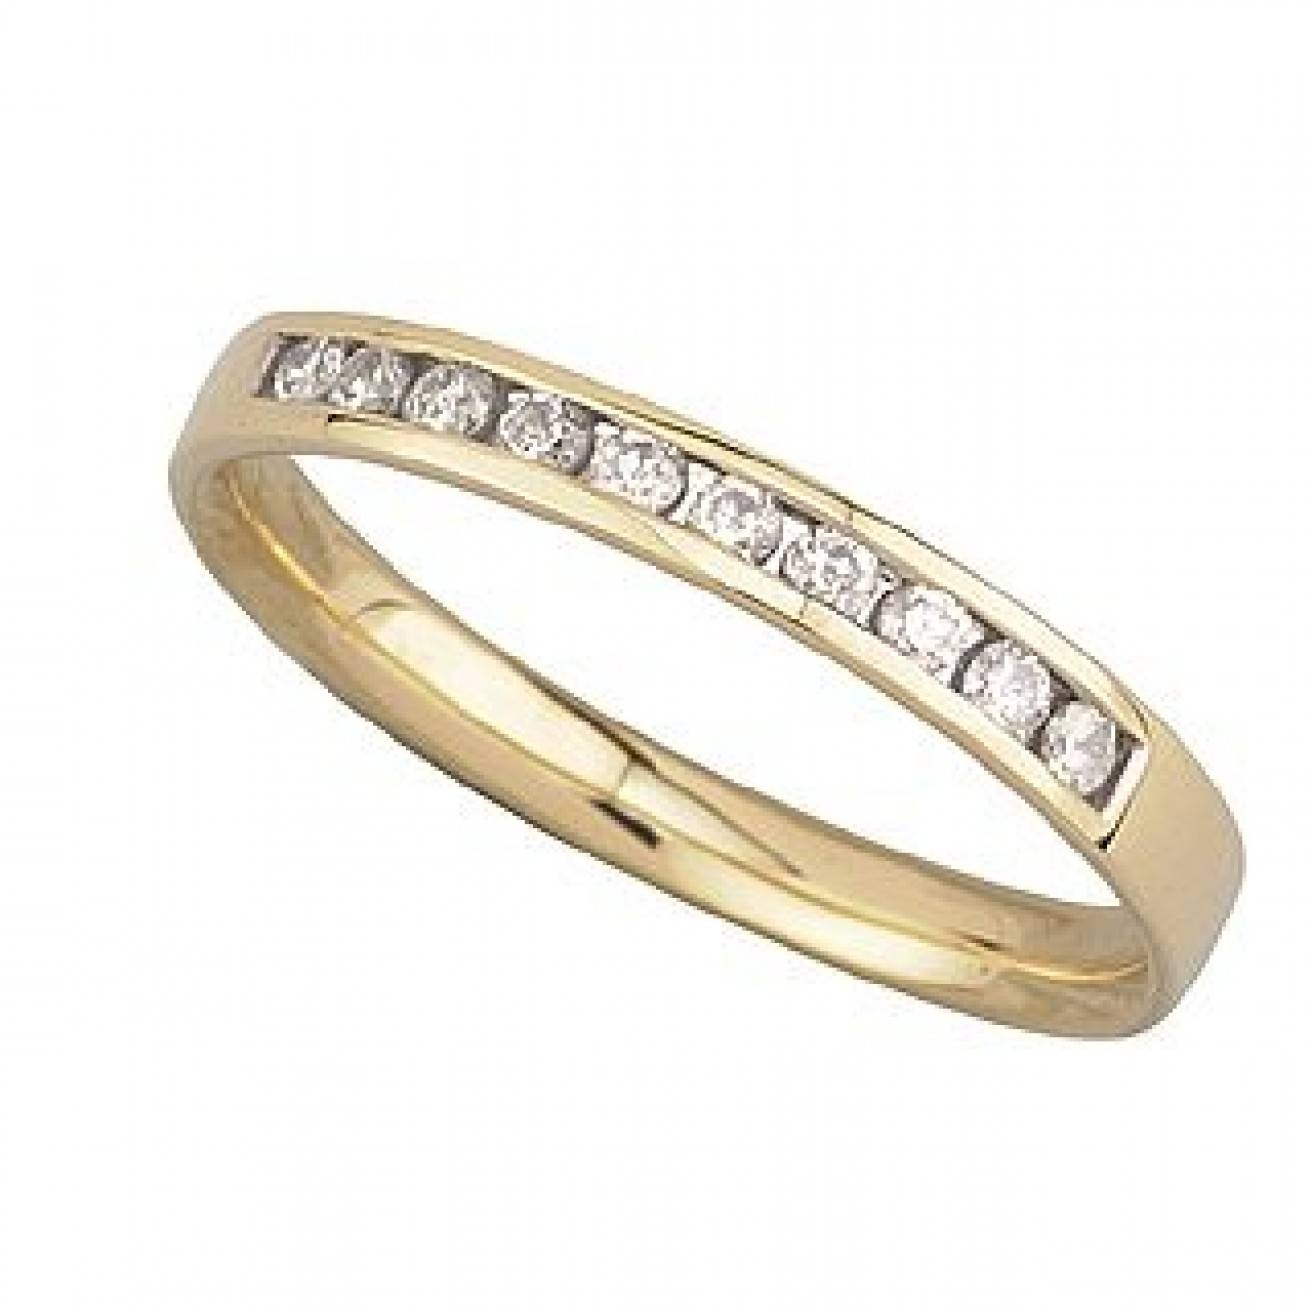 Wedding Rings : 18 Carat Gold Eternity Ring 18Ct Gold Ring Value Pertaining To Recent 18 Carat Gold Wedding Bands (View 11 of 16)